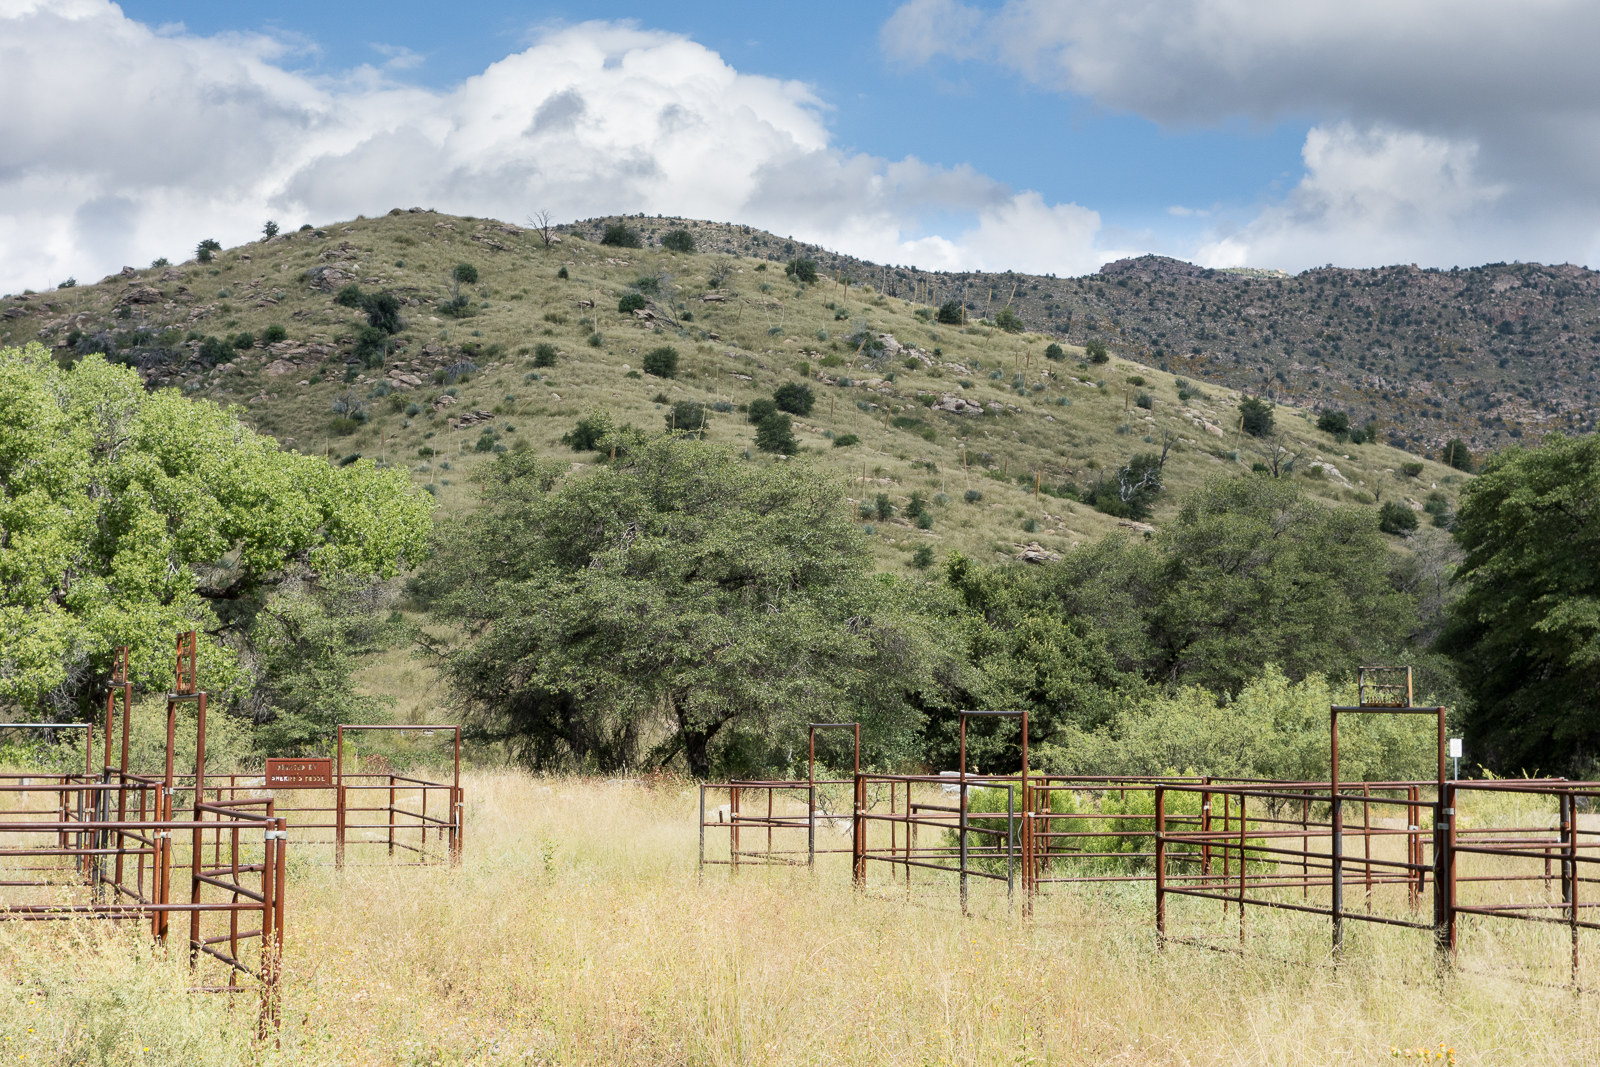 Corrals in the Gordon Hirabayashi Recreation Area, Santa Catalina Mountains. October 2015.